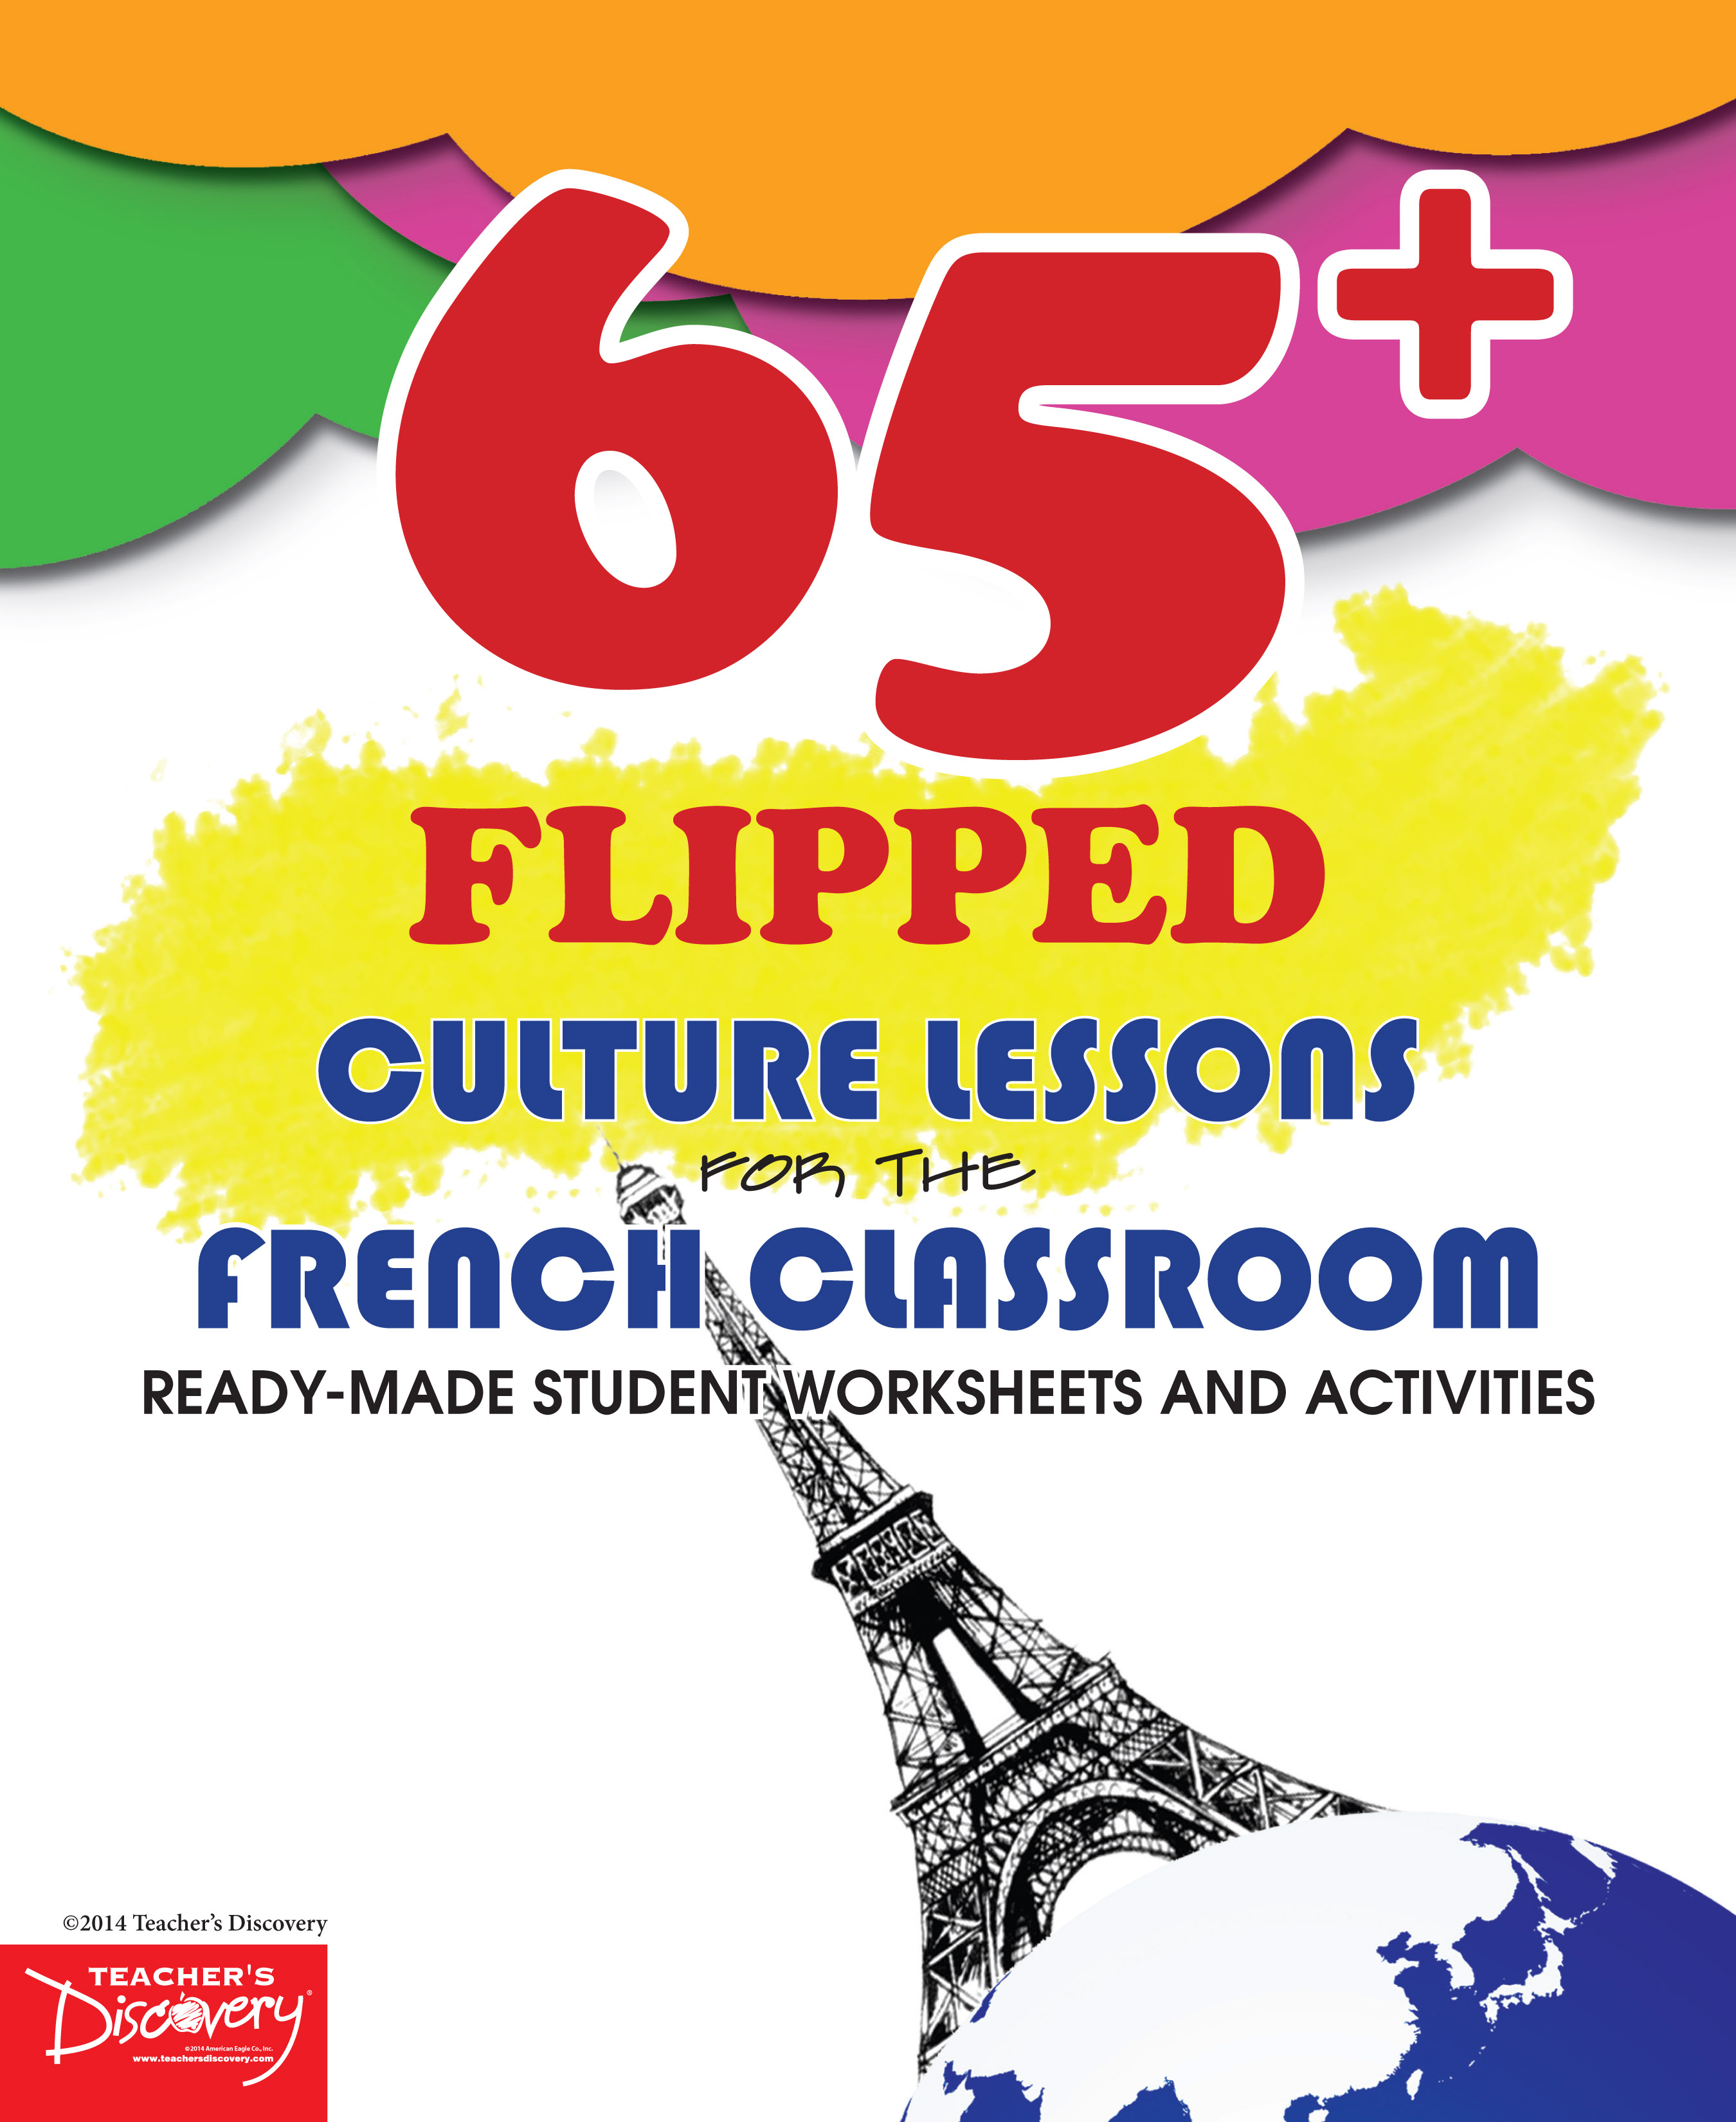 65+ Flipped Culture Lessons for the French Classroom